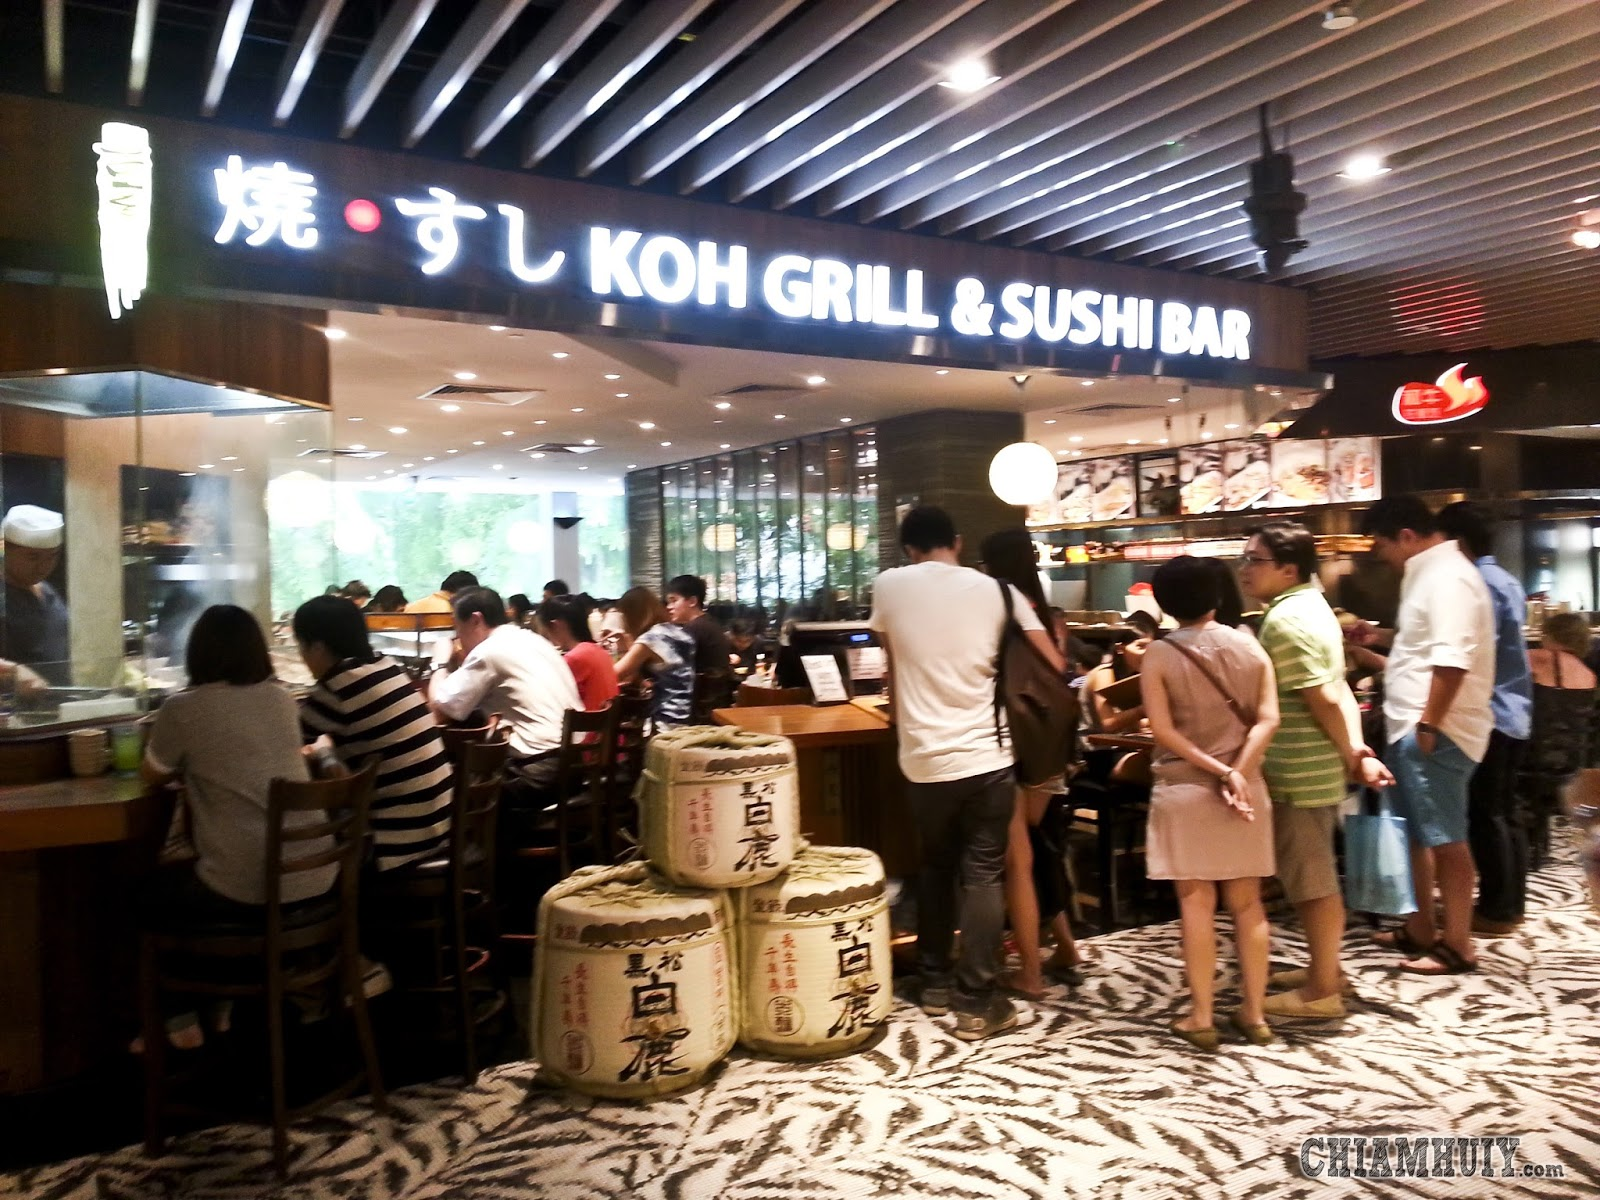 Food review: Koh Grill and Sushi Bar - Is shiok maki ... - photo#27